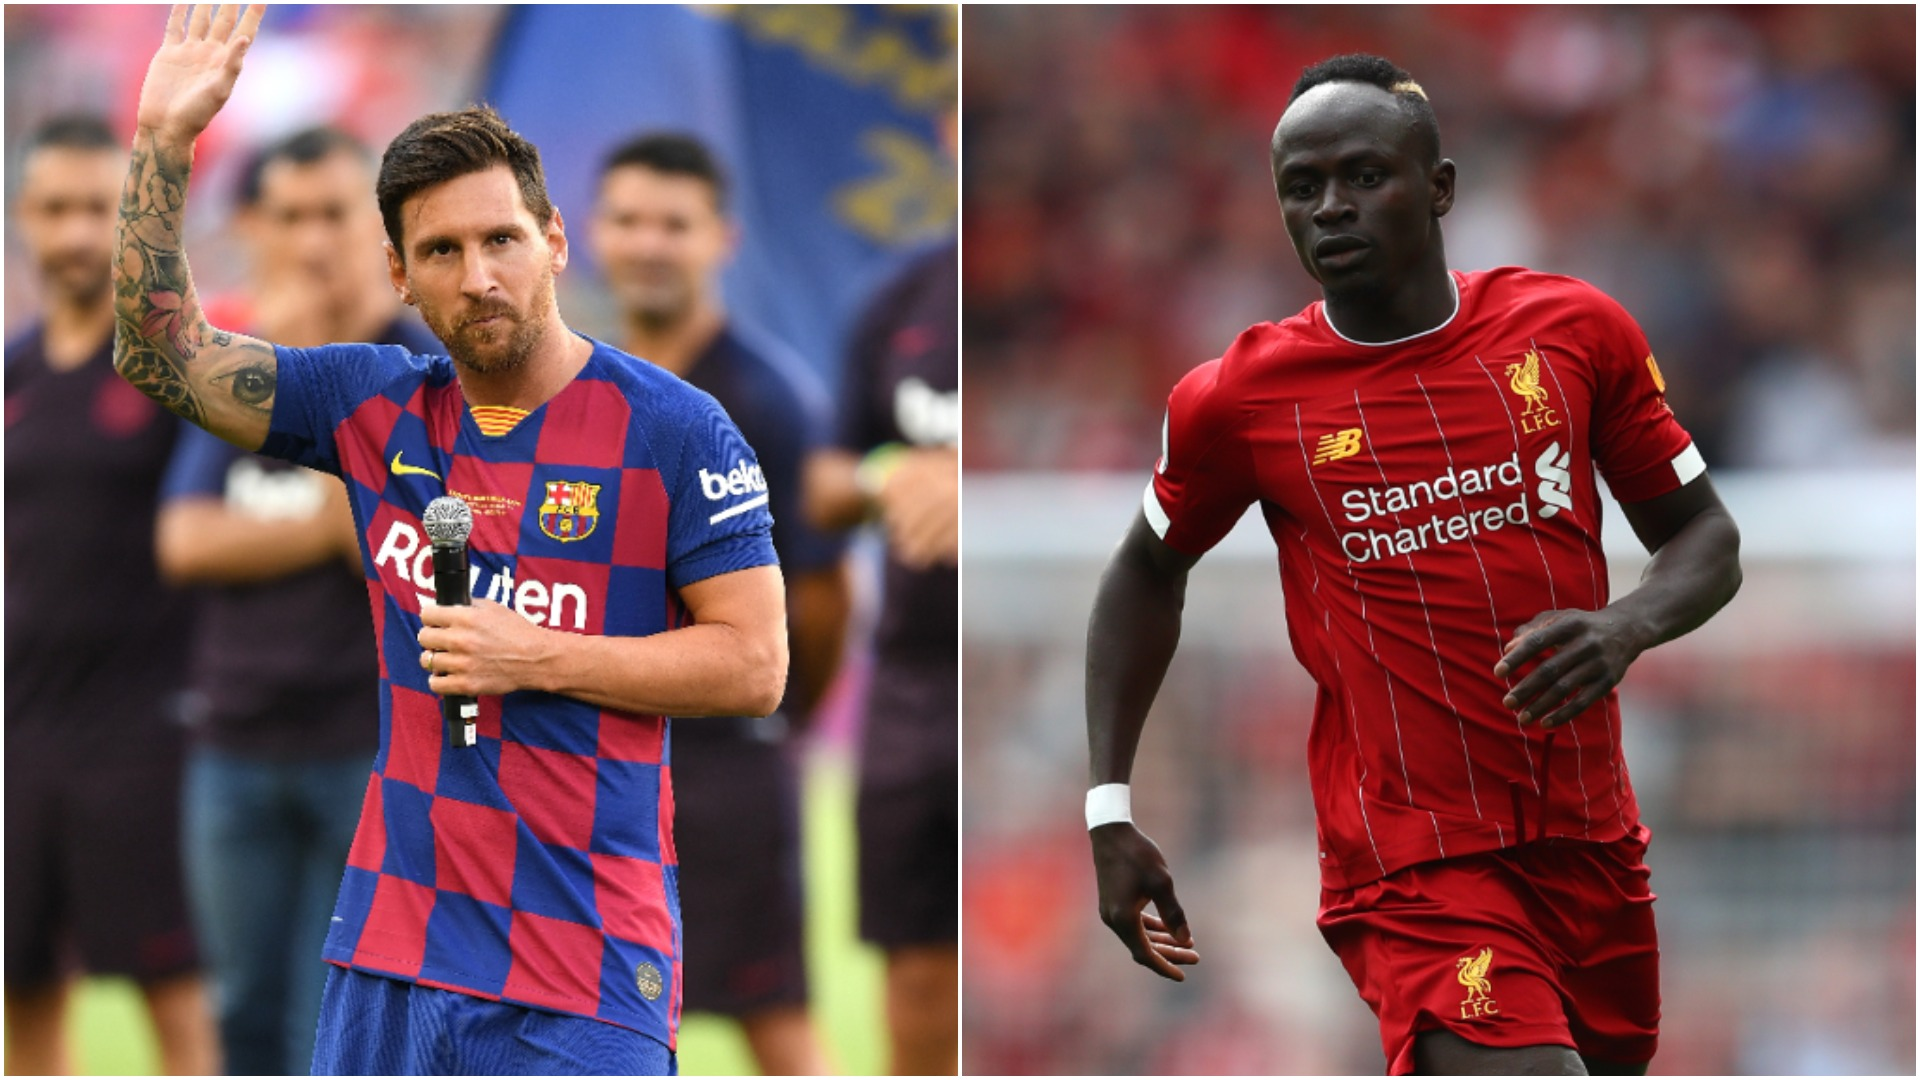 Lionel Messi and Sadio Mane